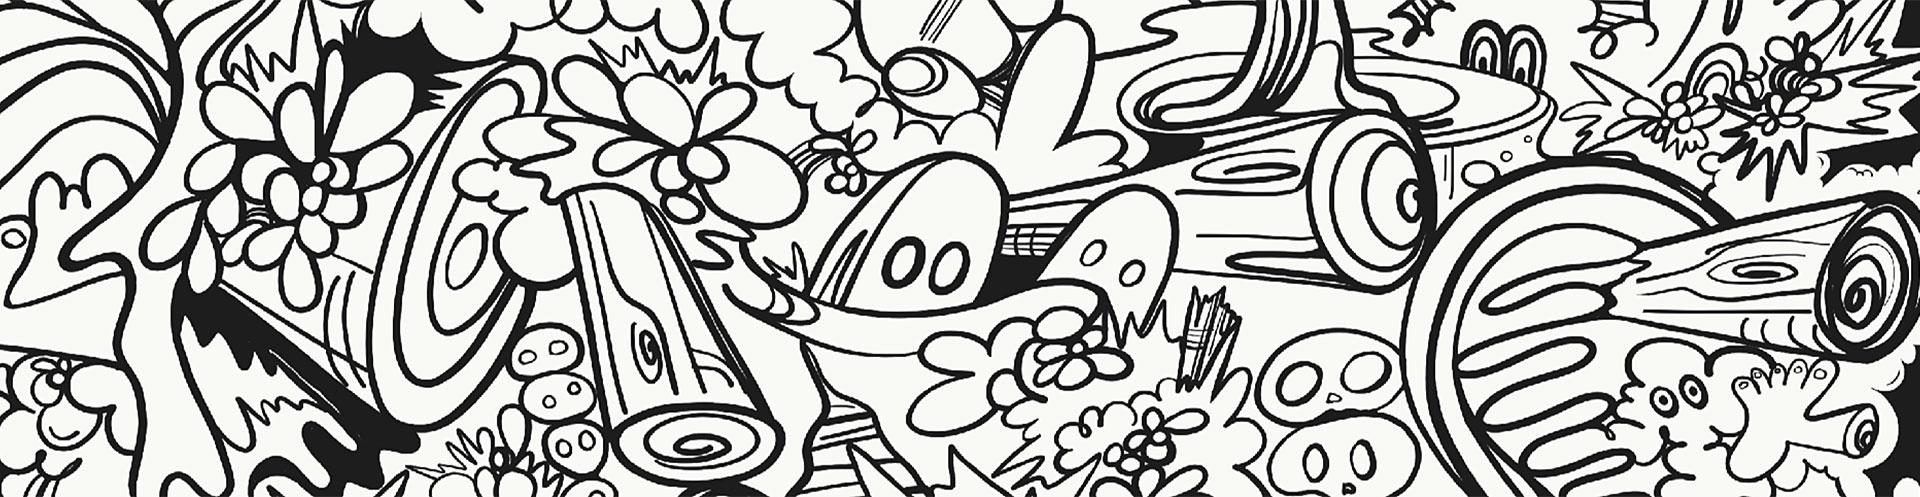 ZMA Presents Artist-Made Coloring Book Pages